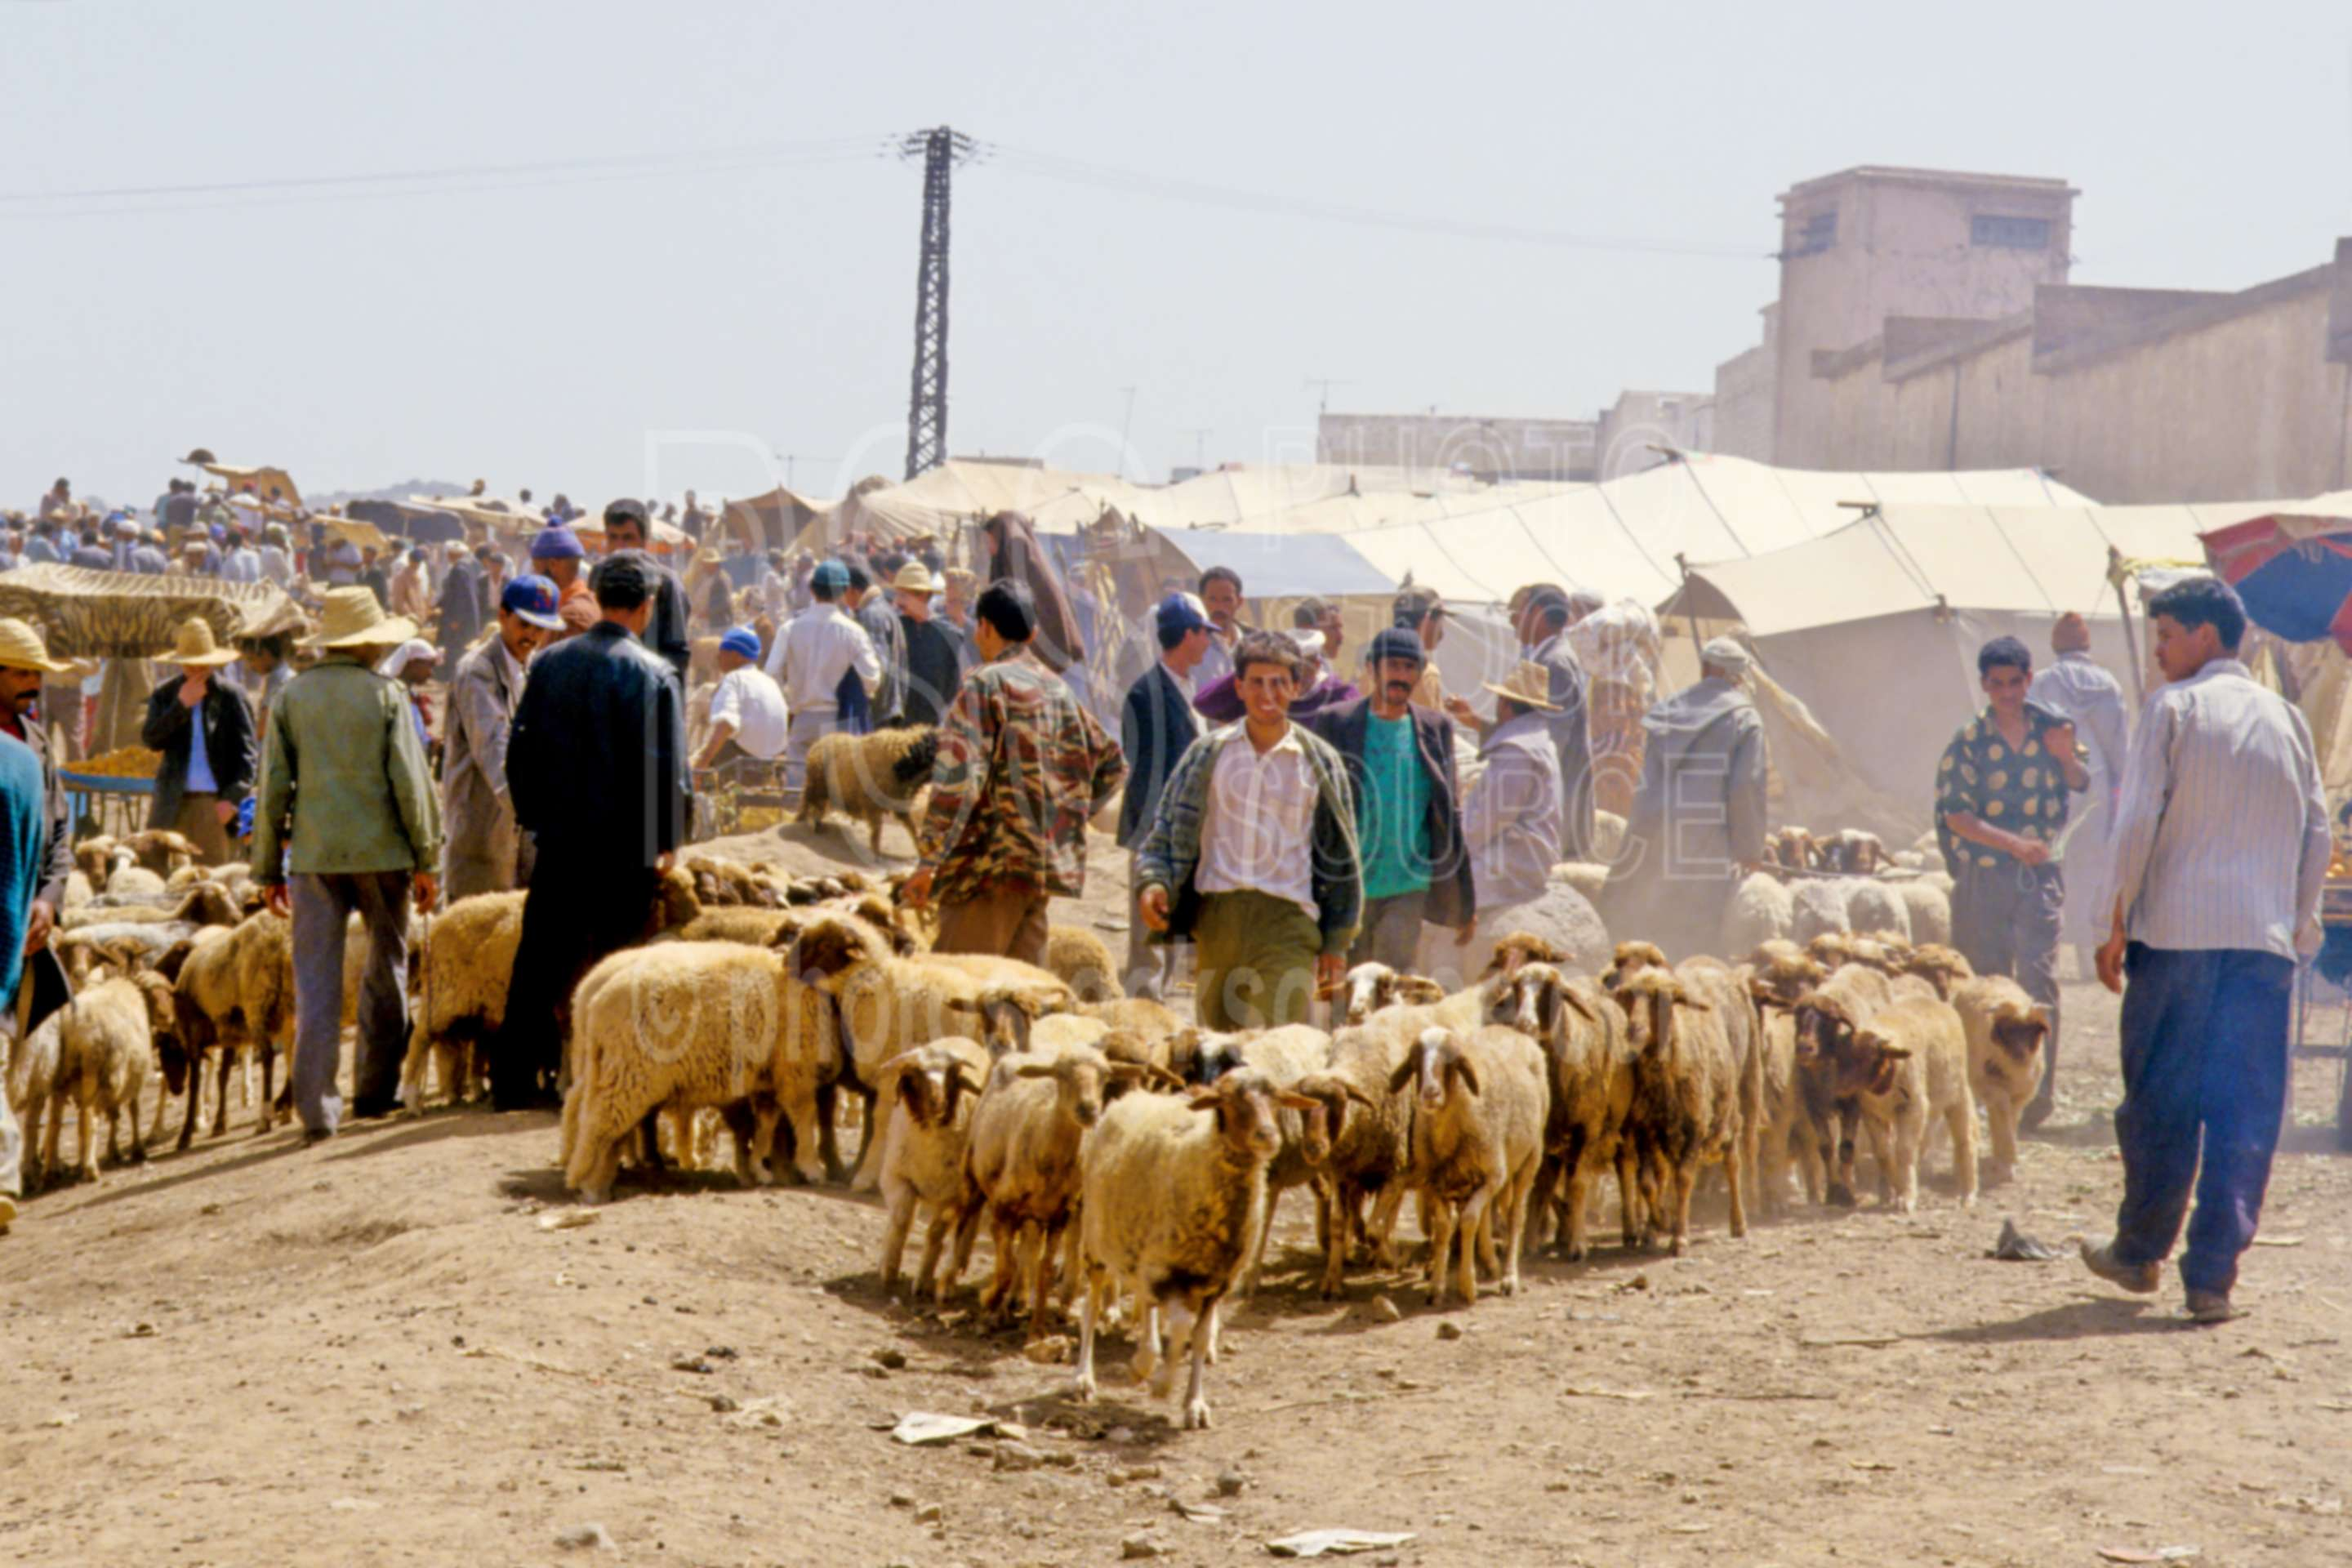 Sheep Sellers,market,mens,people,sell,sheep,morocco markets,animals